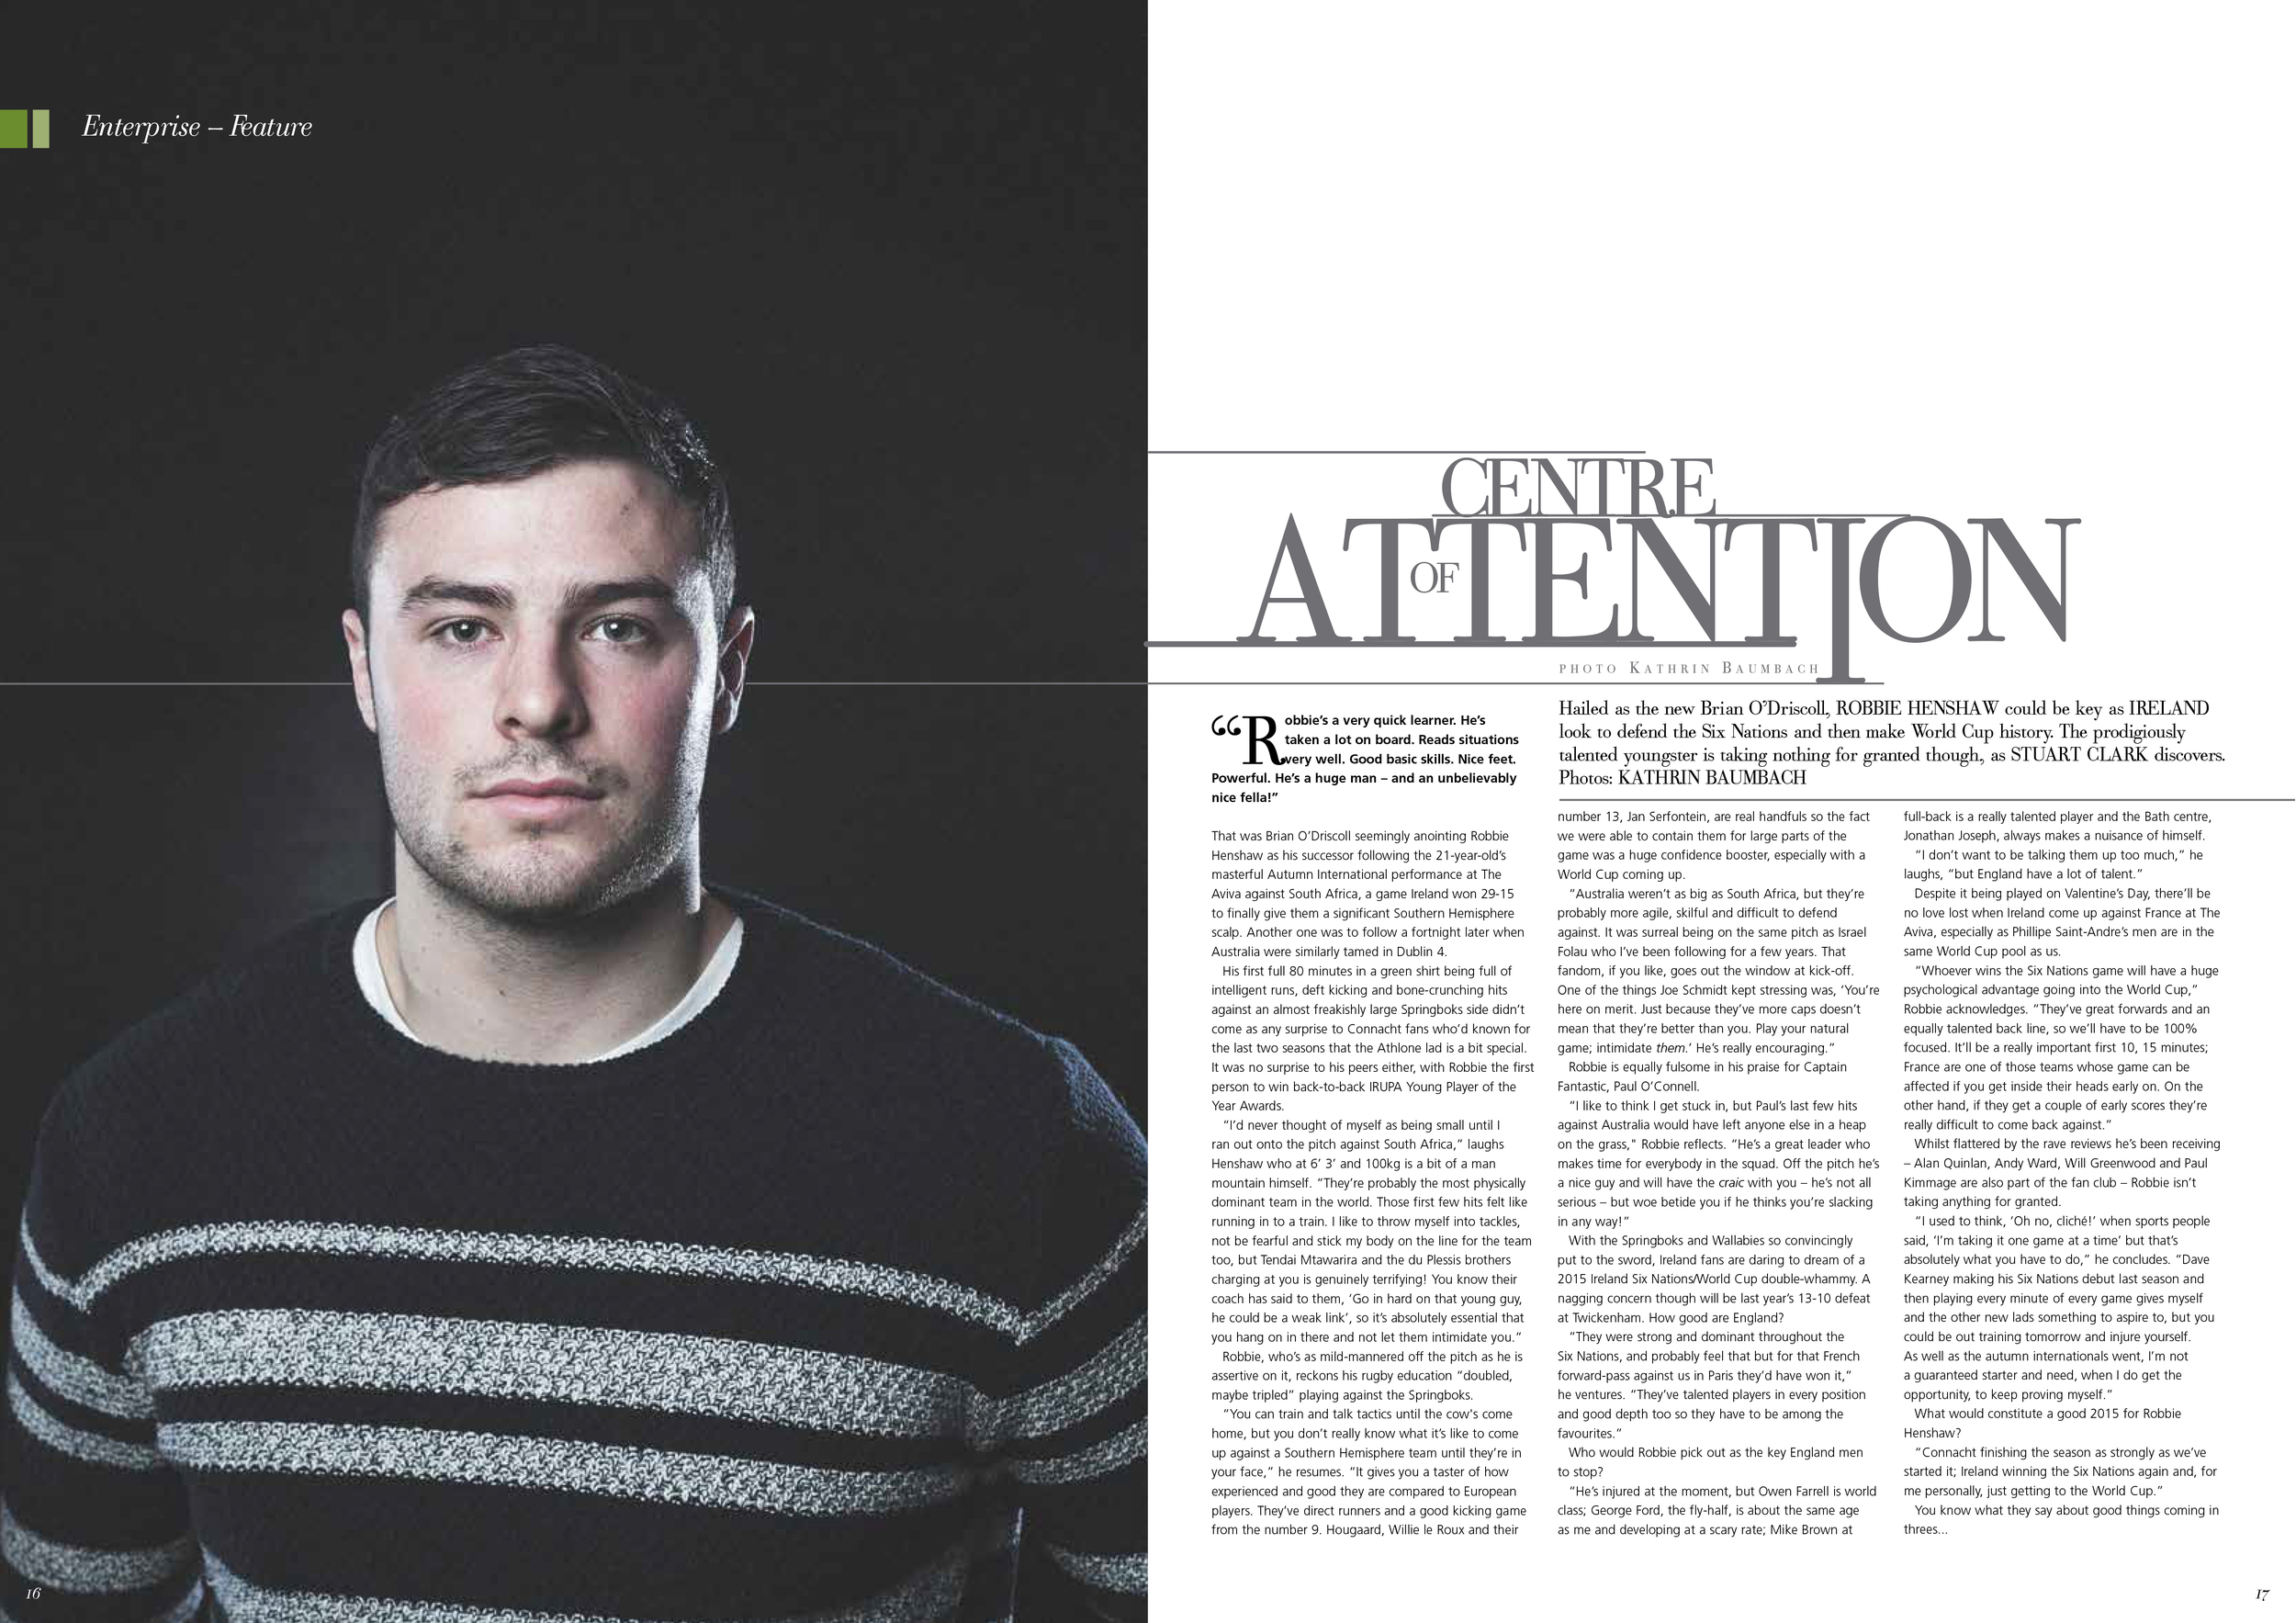 Irish Rugby player Robbie Henshaw photographed for Enterprise Magazine.